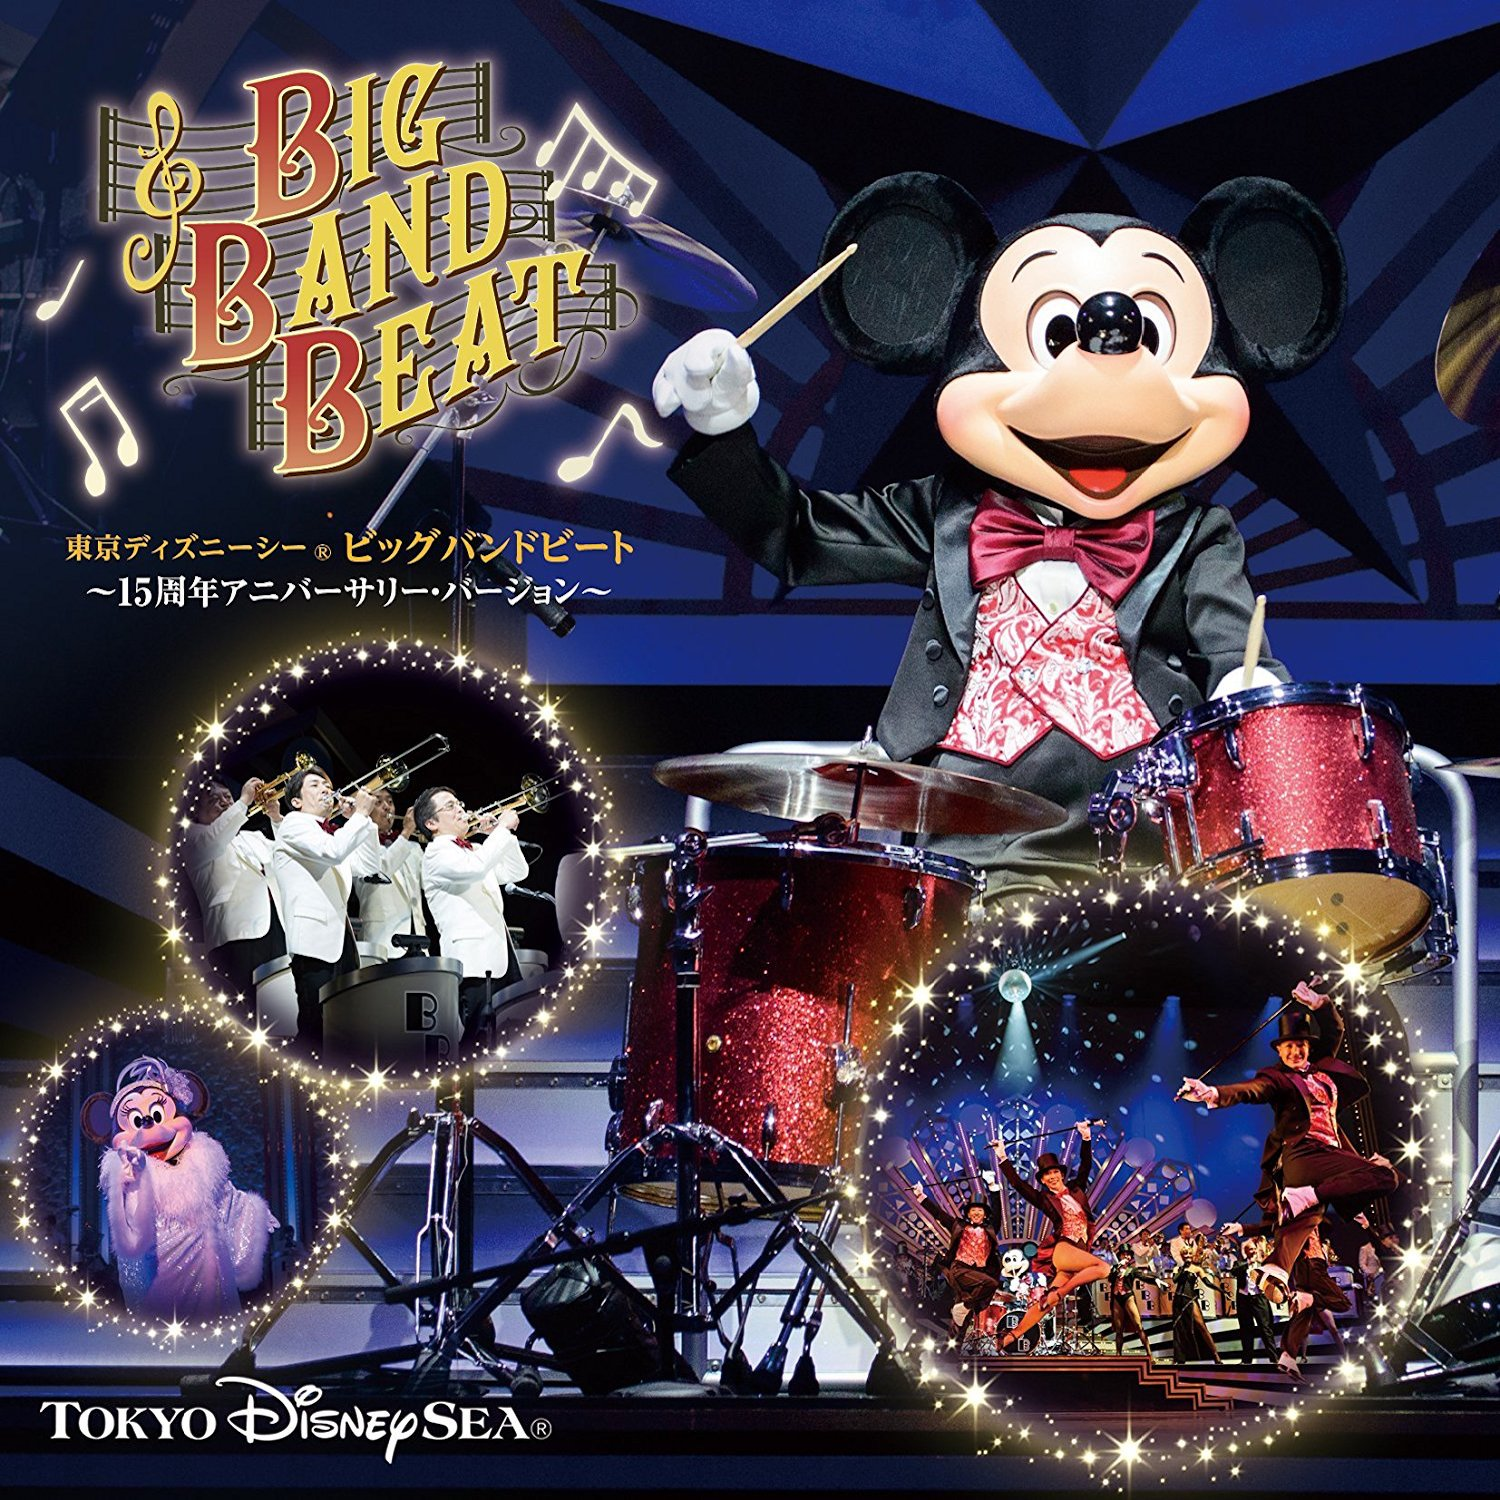 CD cover art for the Tokyo DisneySea 15th anniversary version of  Big Band Beat.  The music is available for purchase or digital download from   Amazon.co.jp.